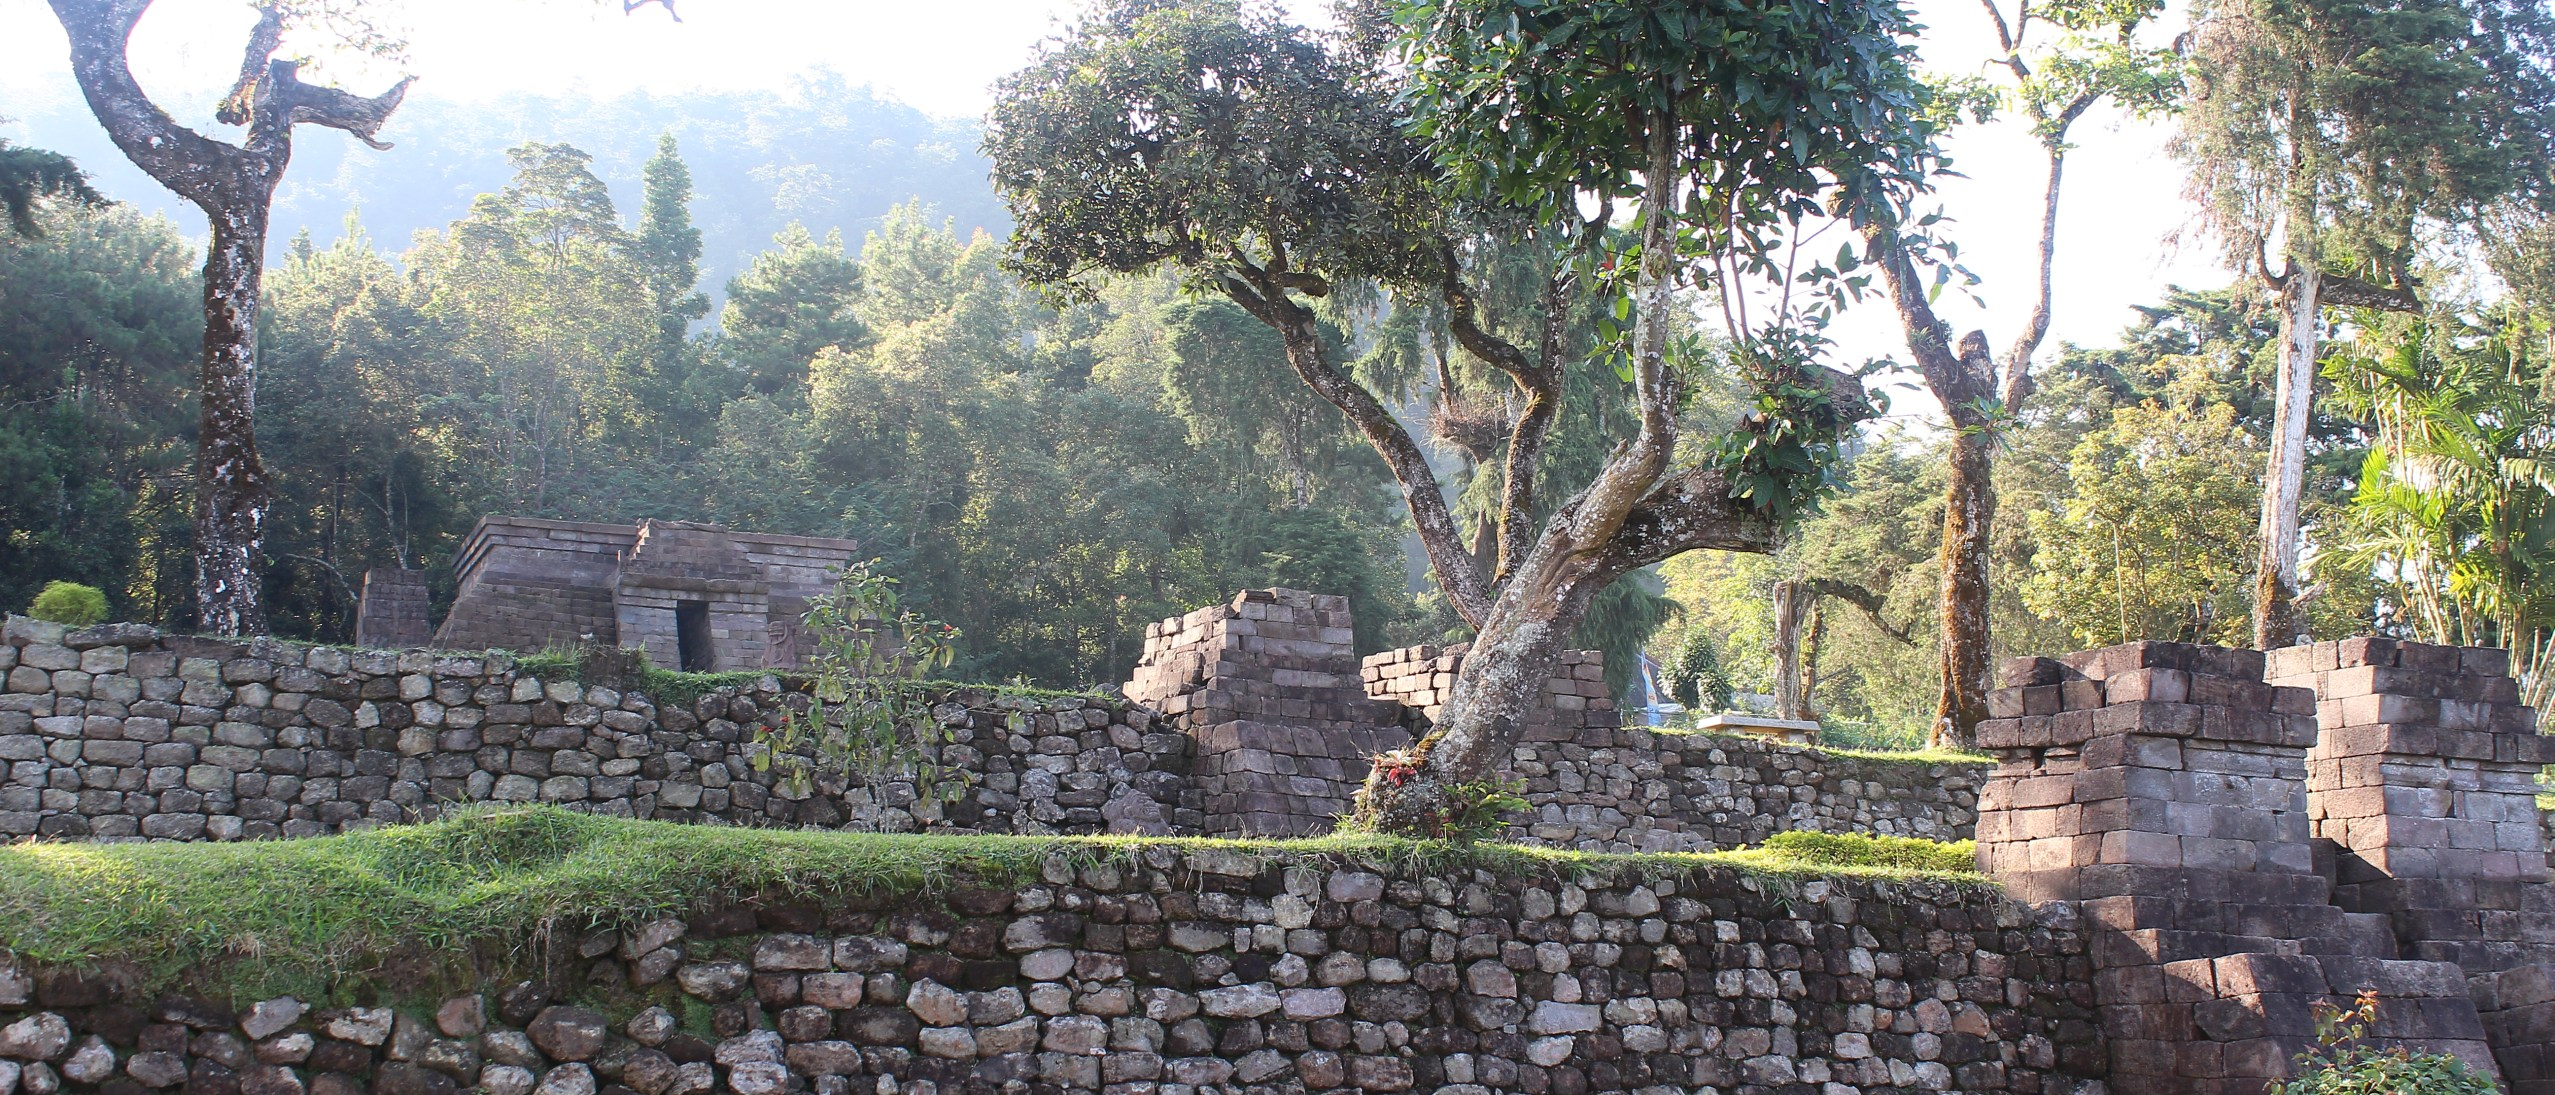 Pyramidal-terraced temple built into forested mountainside, the rising sun casting light from behind through the